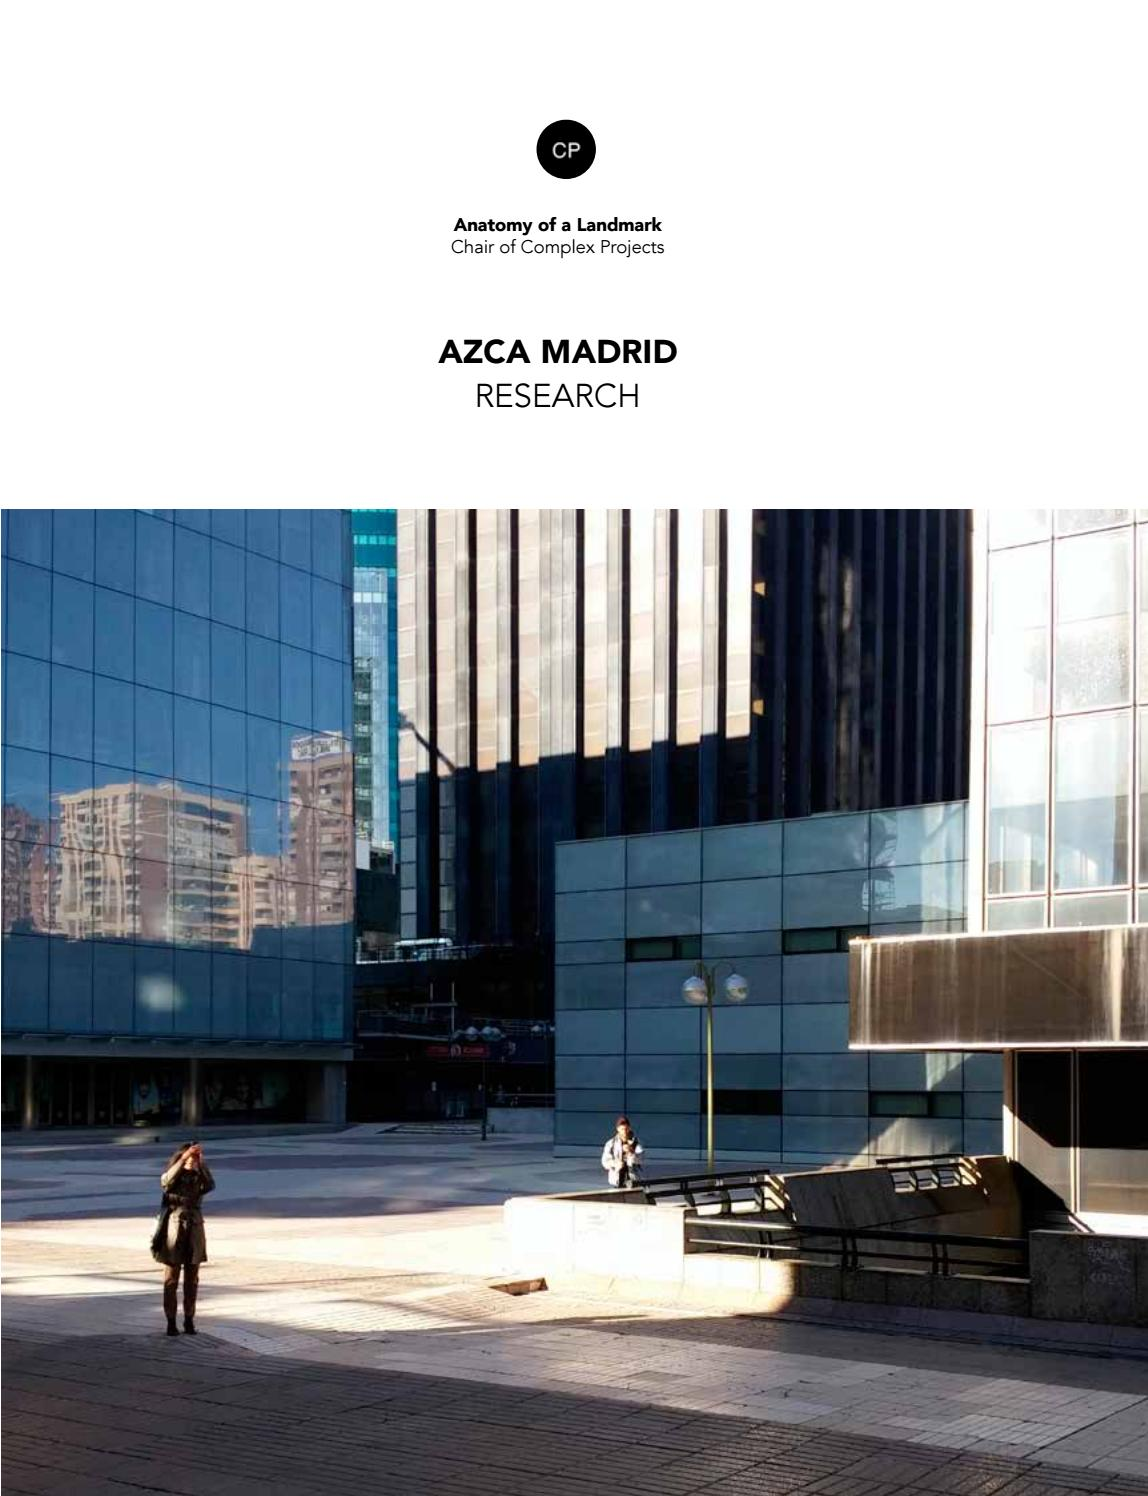 Azca Madrid Research By Complexprojectstu Delft Issuu